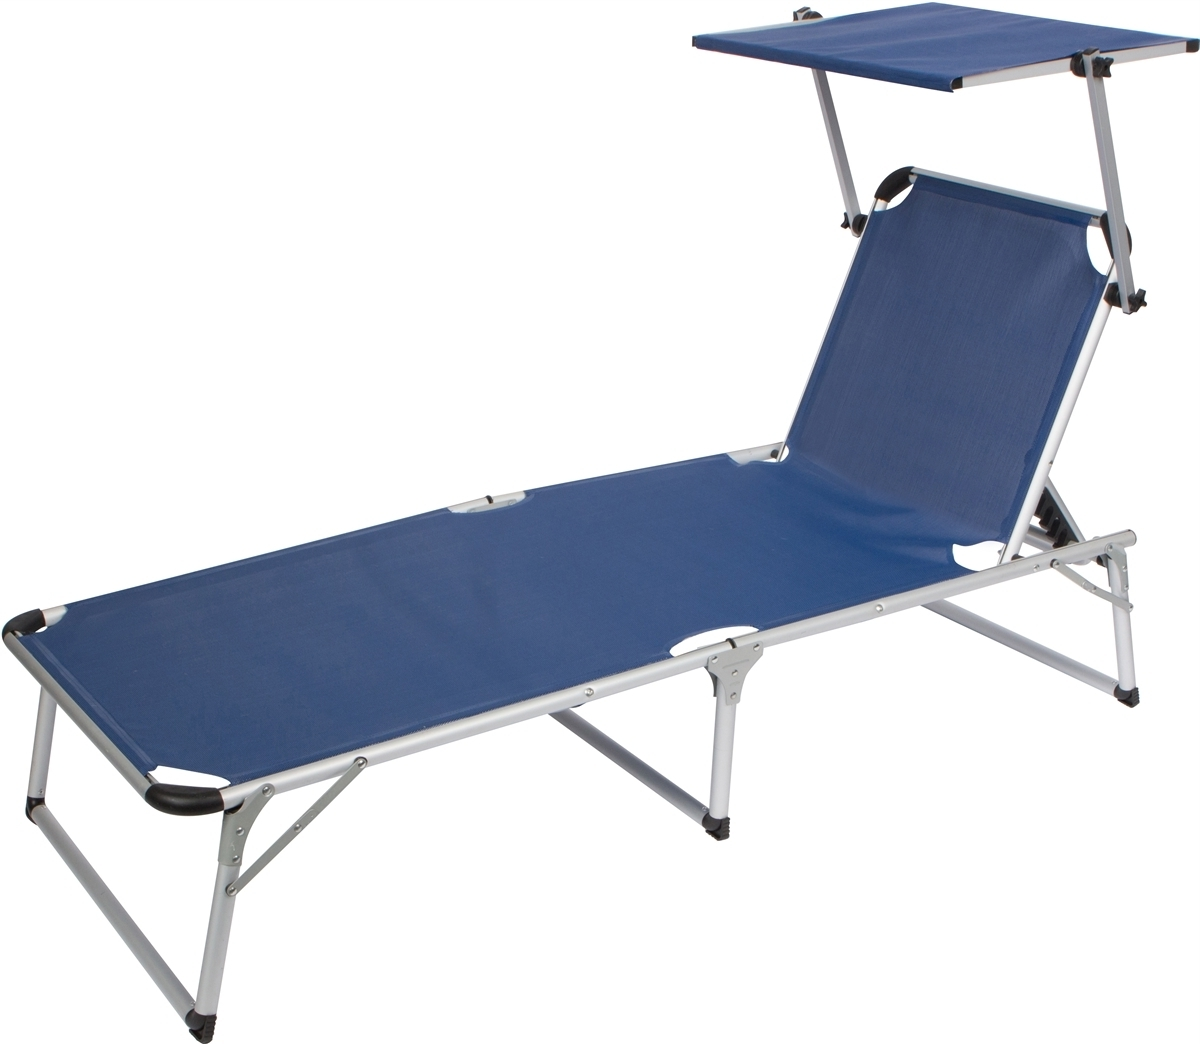 Adjustable Beach Chairs – Sadgururocks In Recent Chaise Lounge Chair With Canopy (View 11 of 15)